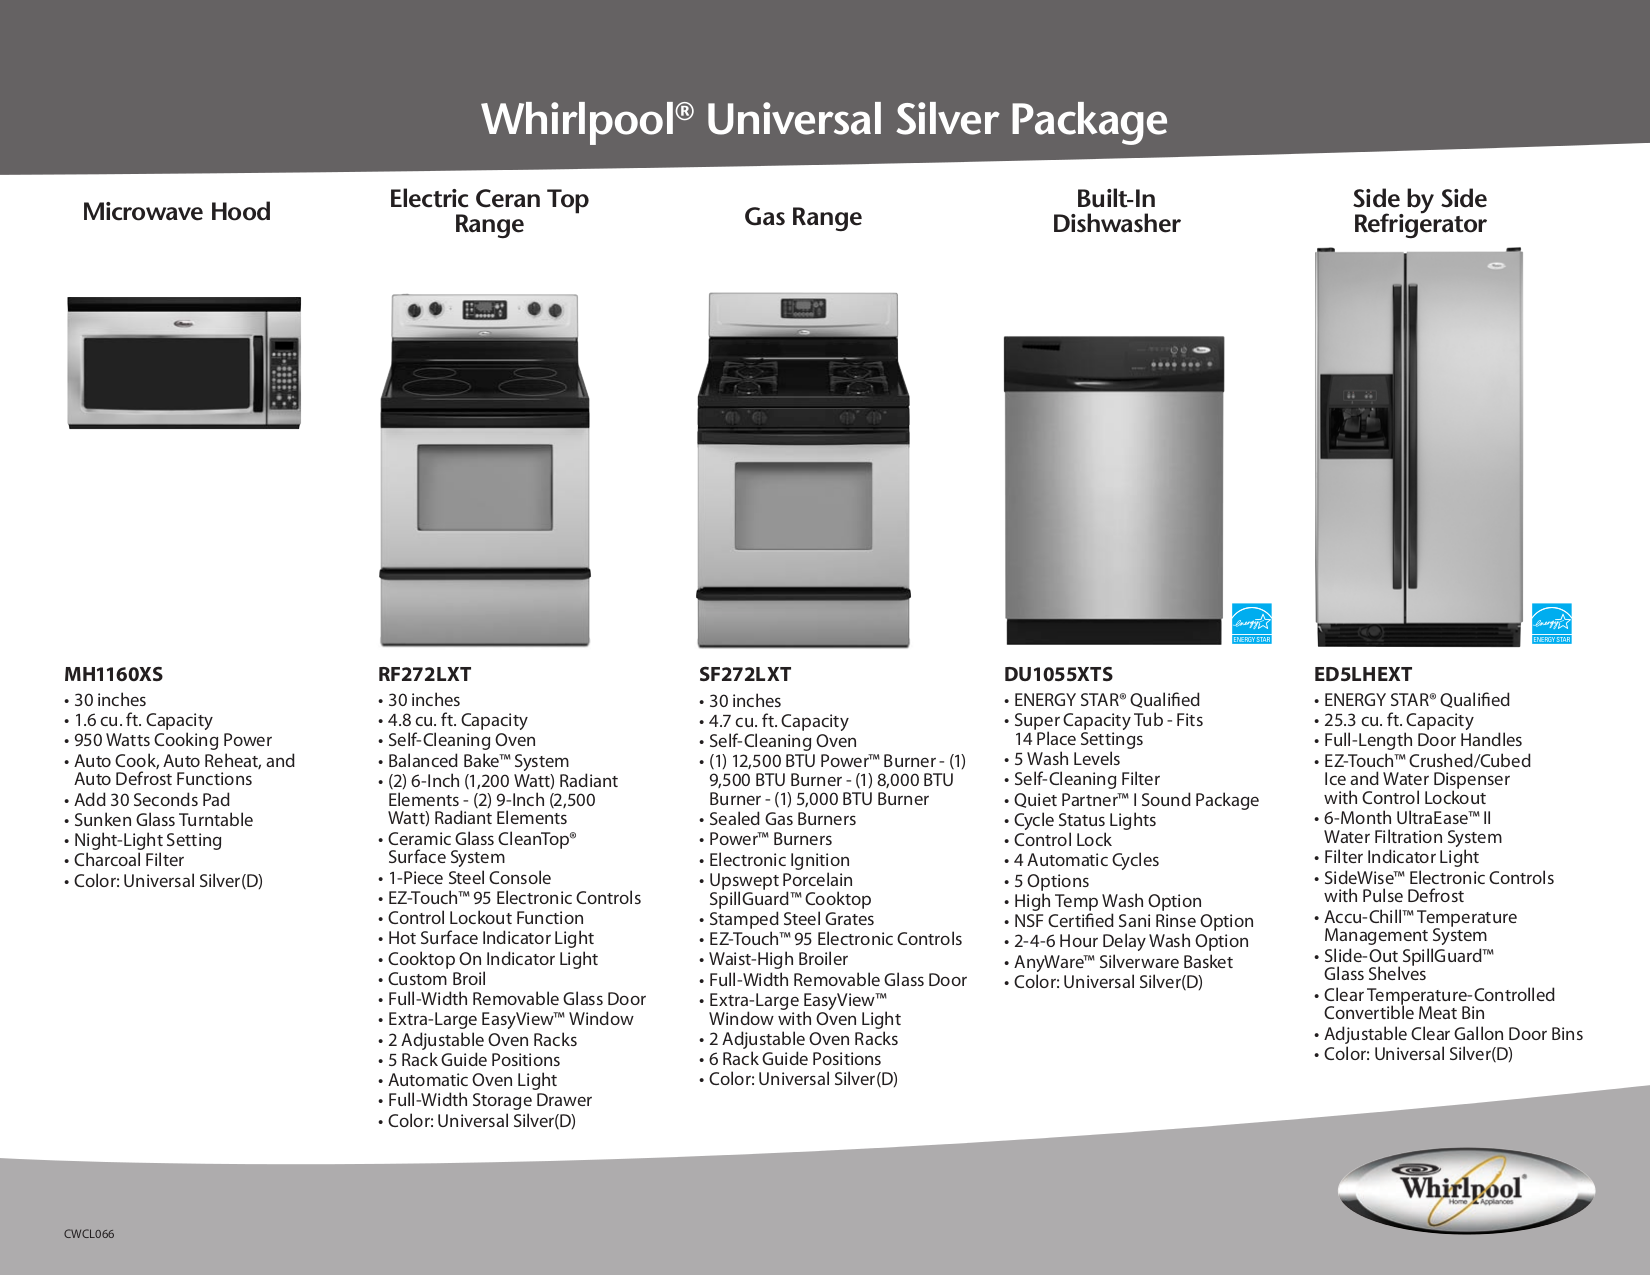 pdf for Whirlpool Microwave MH1160XS manual